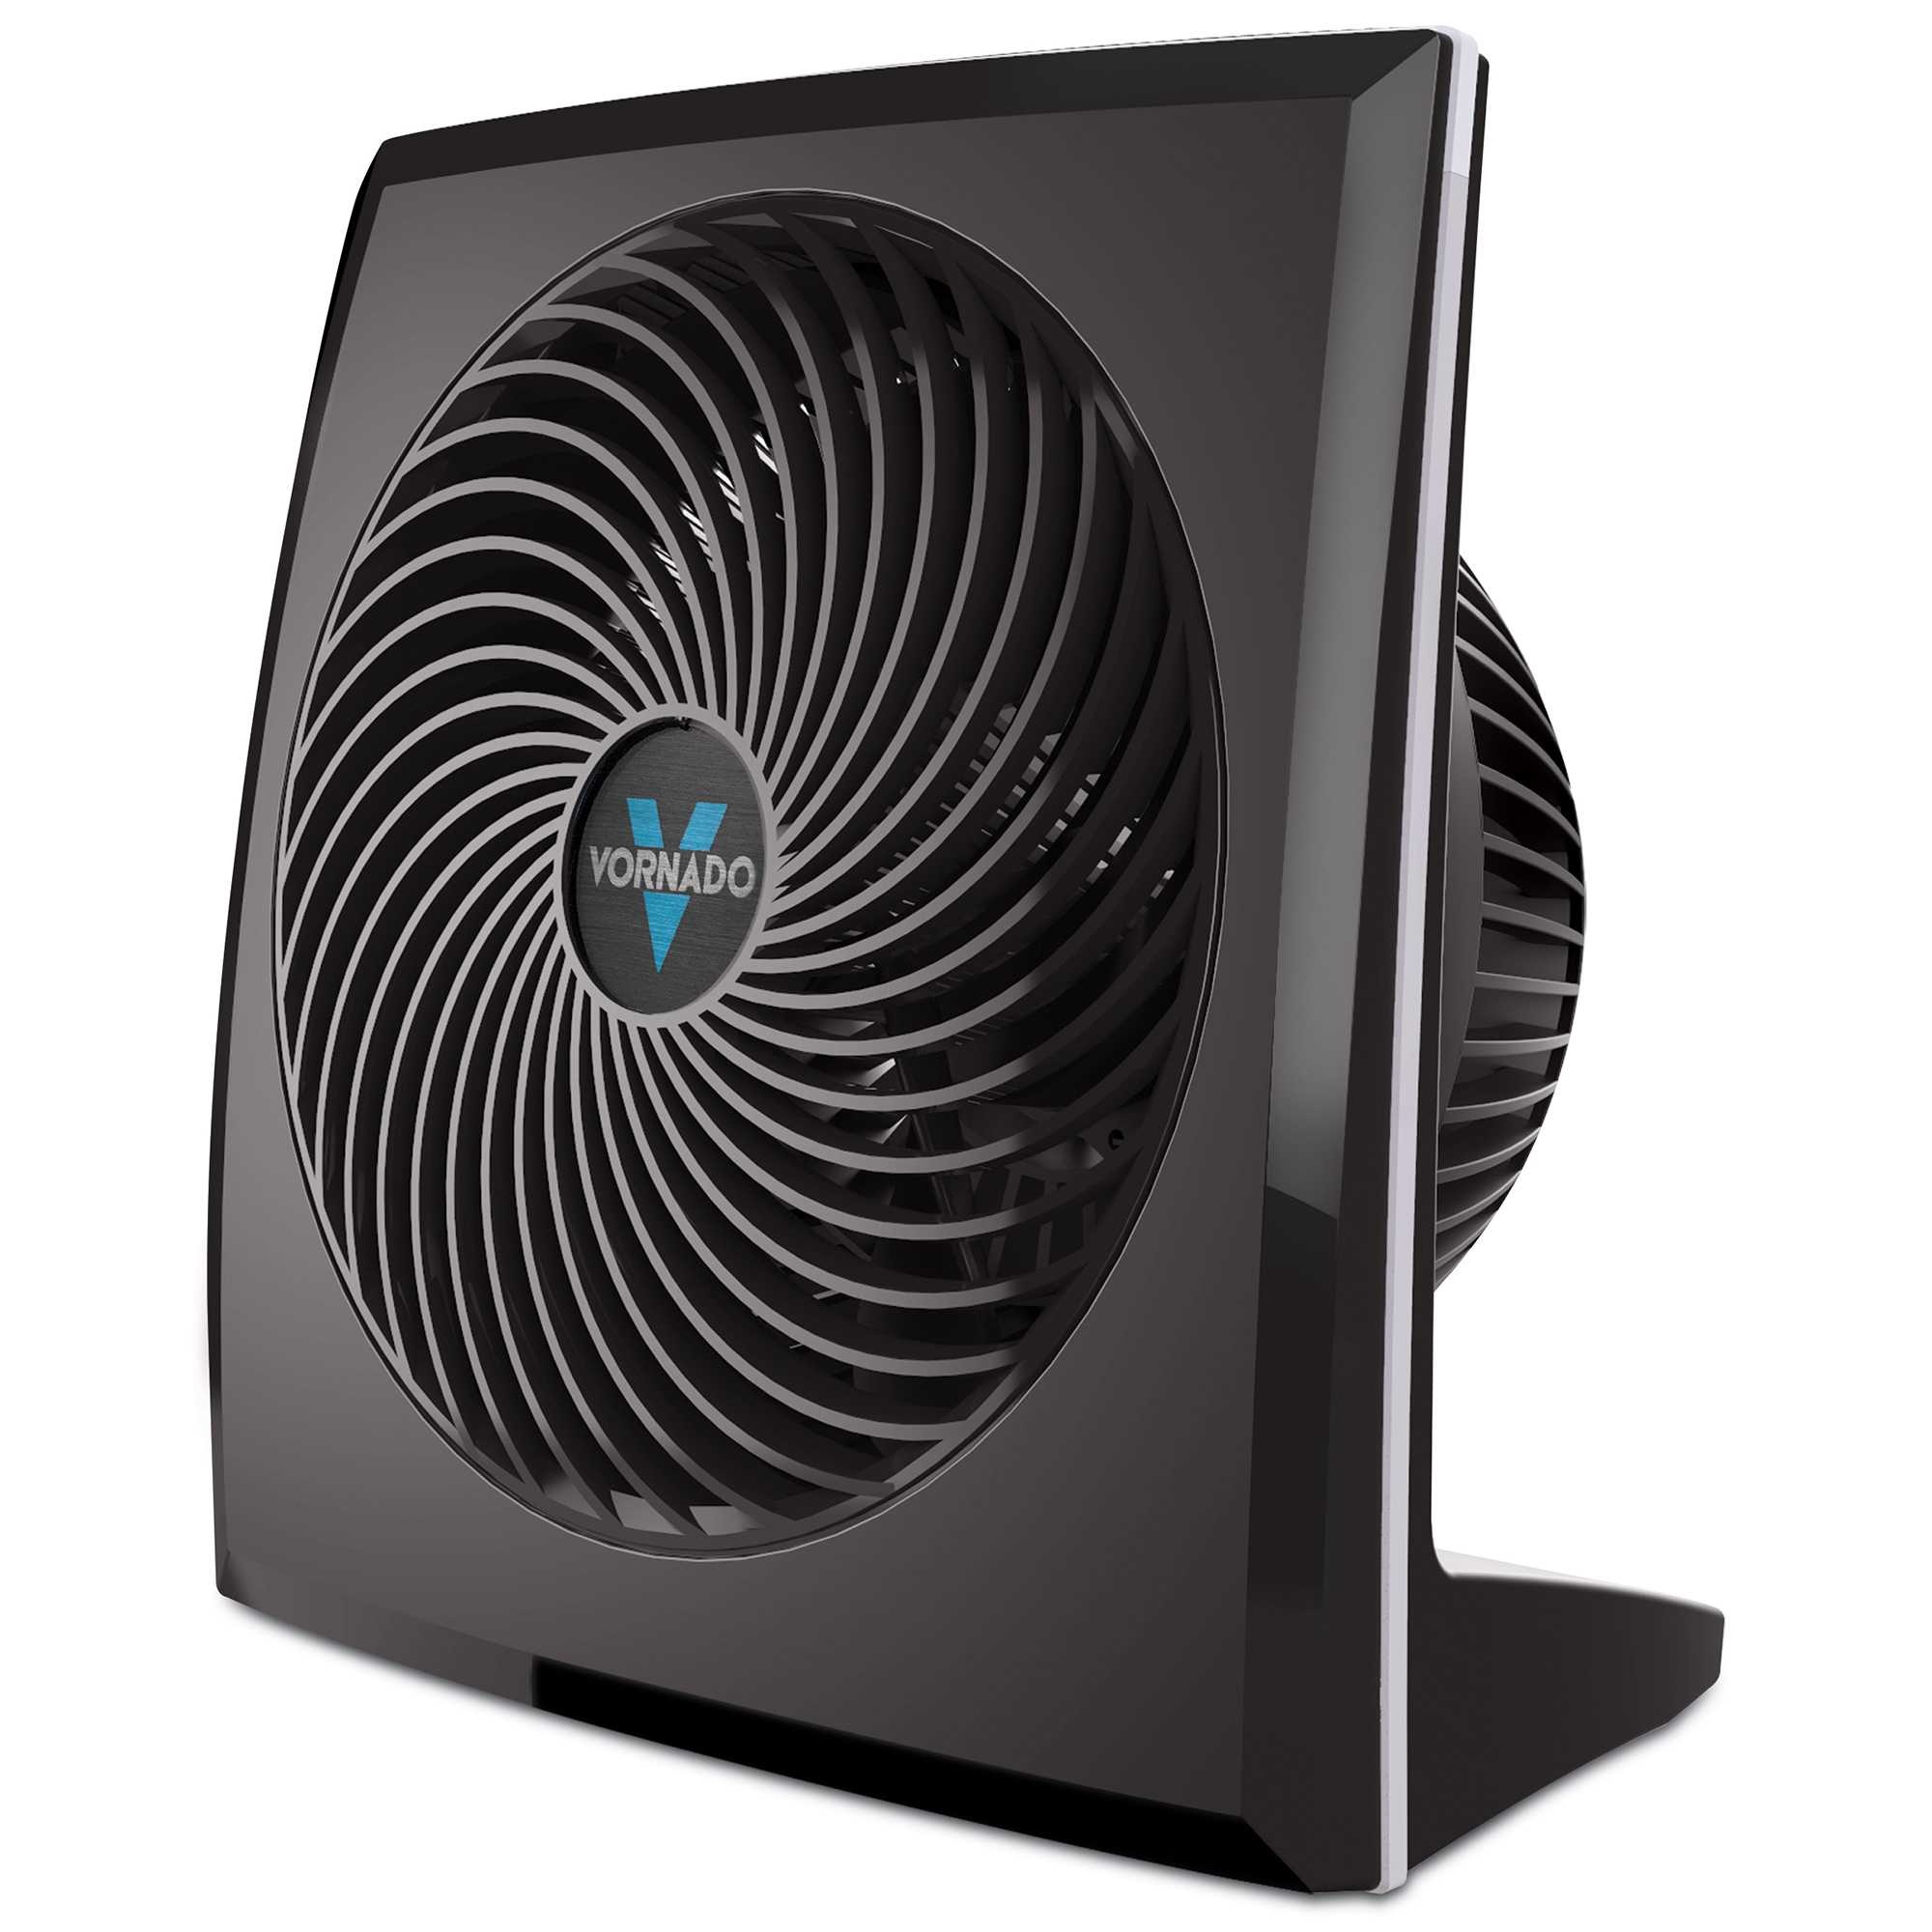 Room To Room Air Circulator : Vornado medium panel whole room air circulator fan ebay